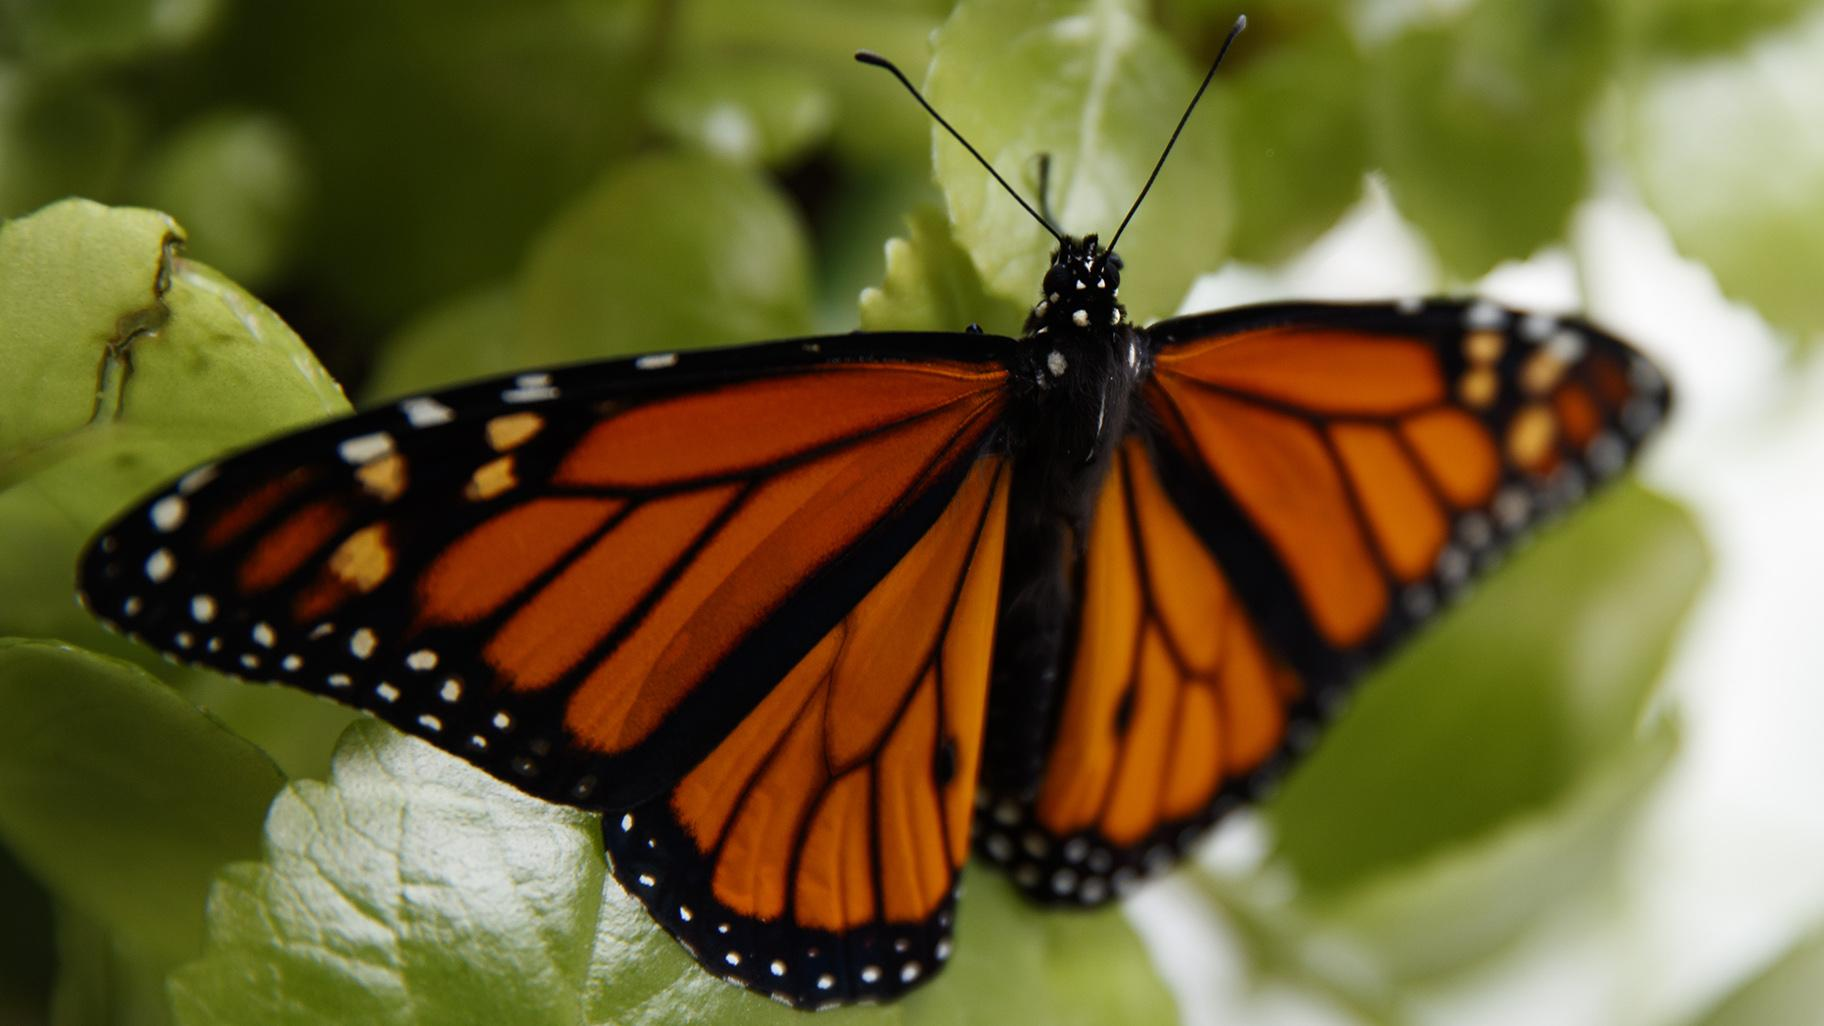 In this June 2, 2019, file photo, a fresh monarch butterfly rests on a Swedish Ivy plant soon after emerging in Washington. (AP Photo / Carolyn Kaster, File)